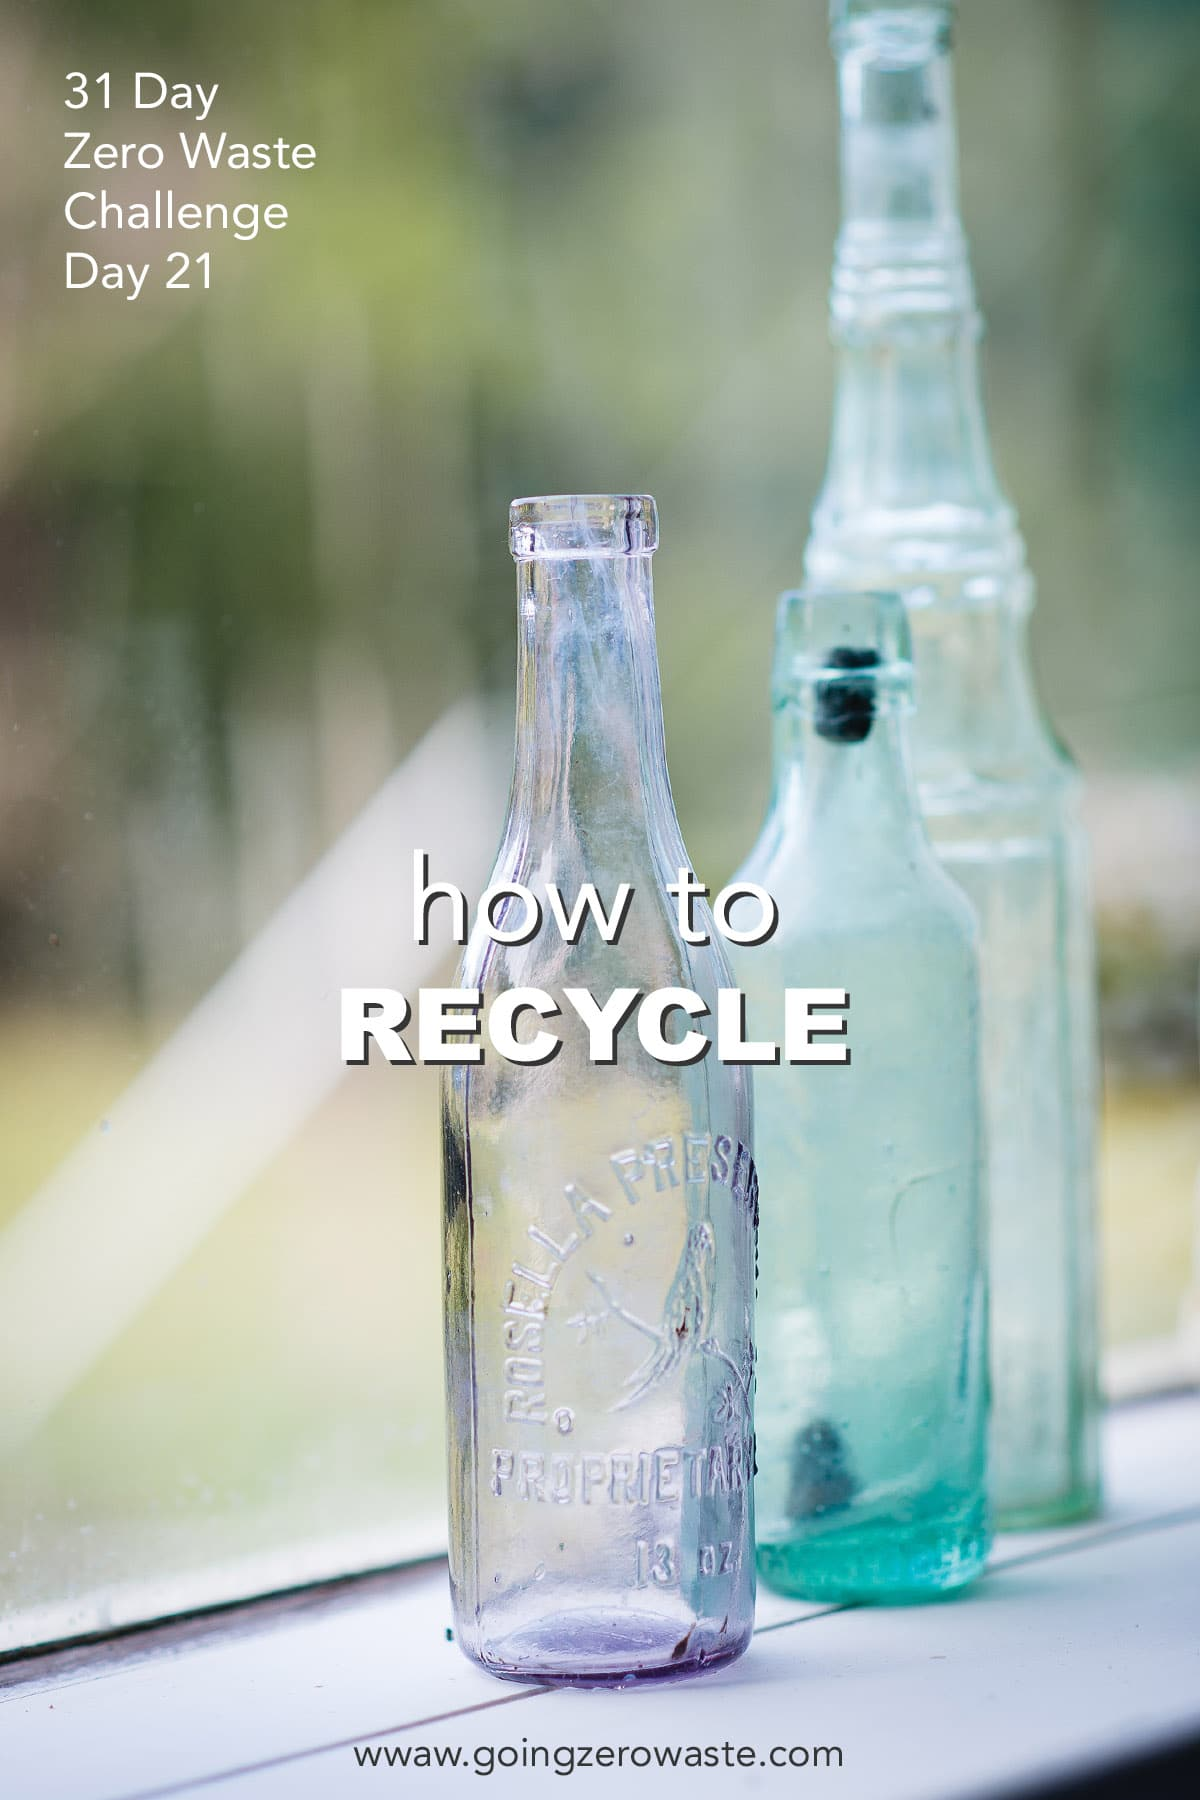 How to Recycle - Day 21 of the Zero Waste Challenge